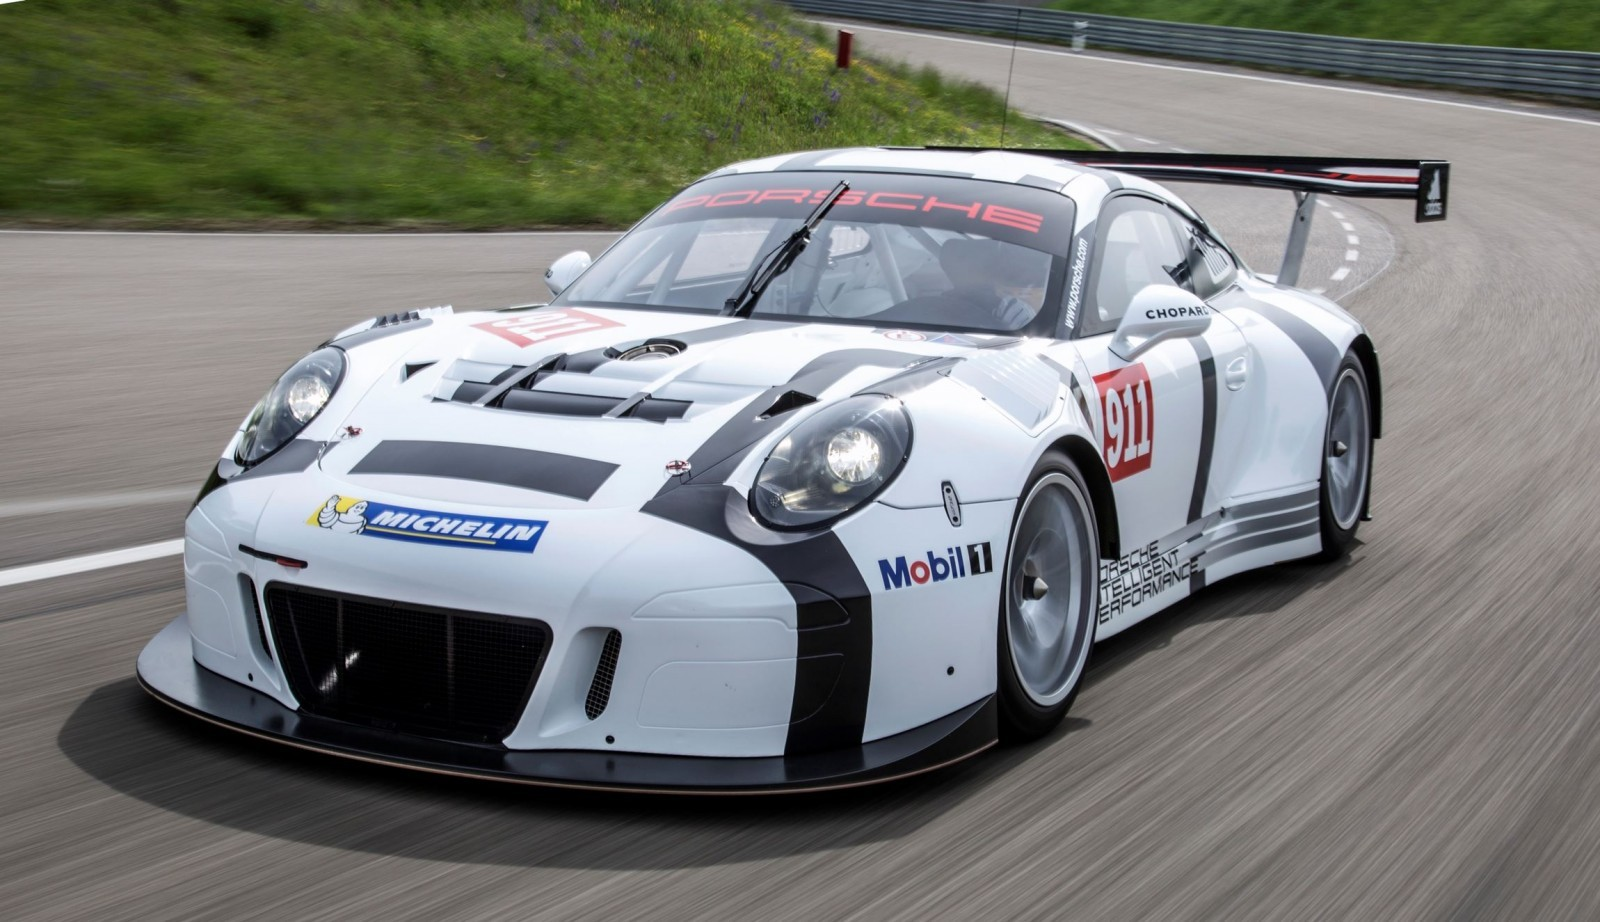 2015 porsche 911 gt3 r vs gt3 cup vs gt3 rsr. Black Bedroom Furniture Sets. Home Design Ideas